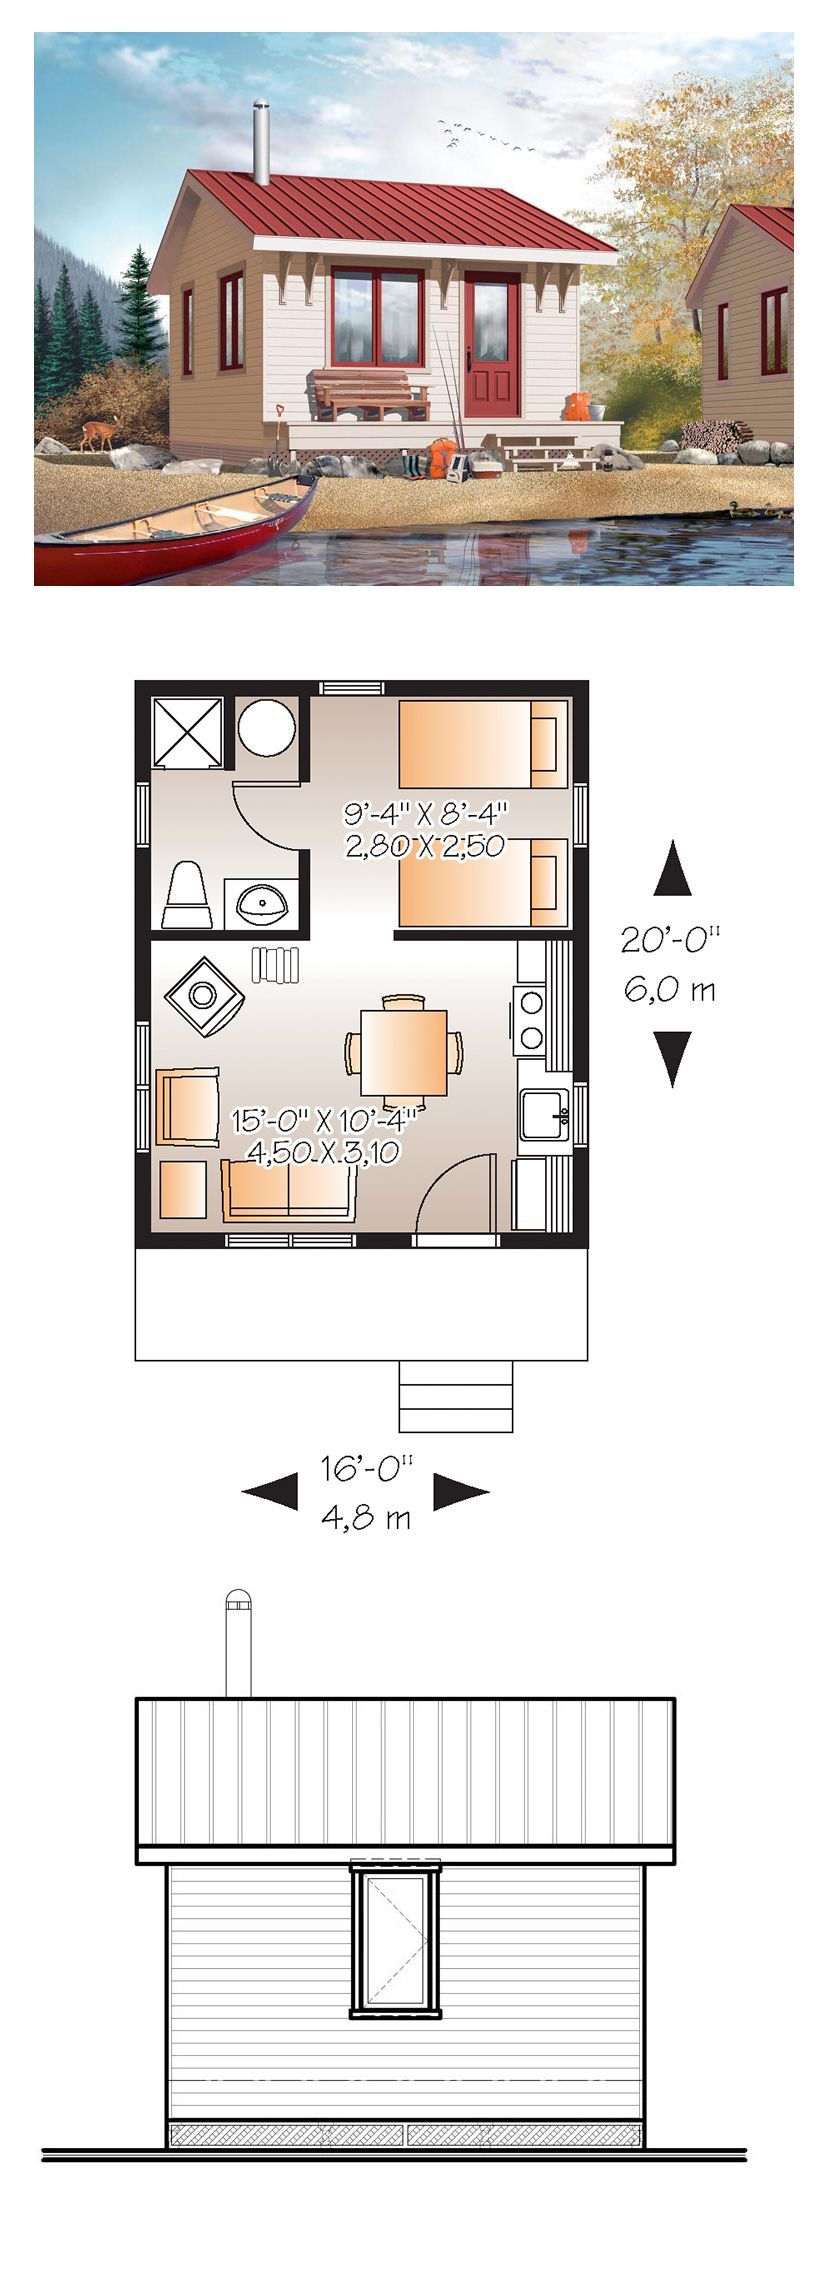 Tiny House Plan 76163 Total Living Area 320 Sq Ft 1 Bedroom And 1 Bathroom Tinyhouse Tinyhouseplans Haus Pläne Haus Haus Grundriss